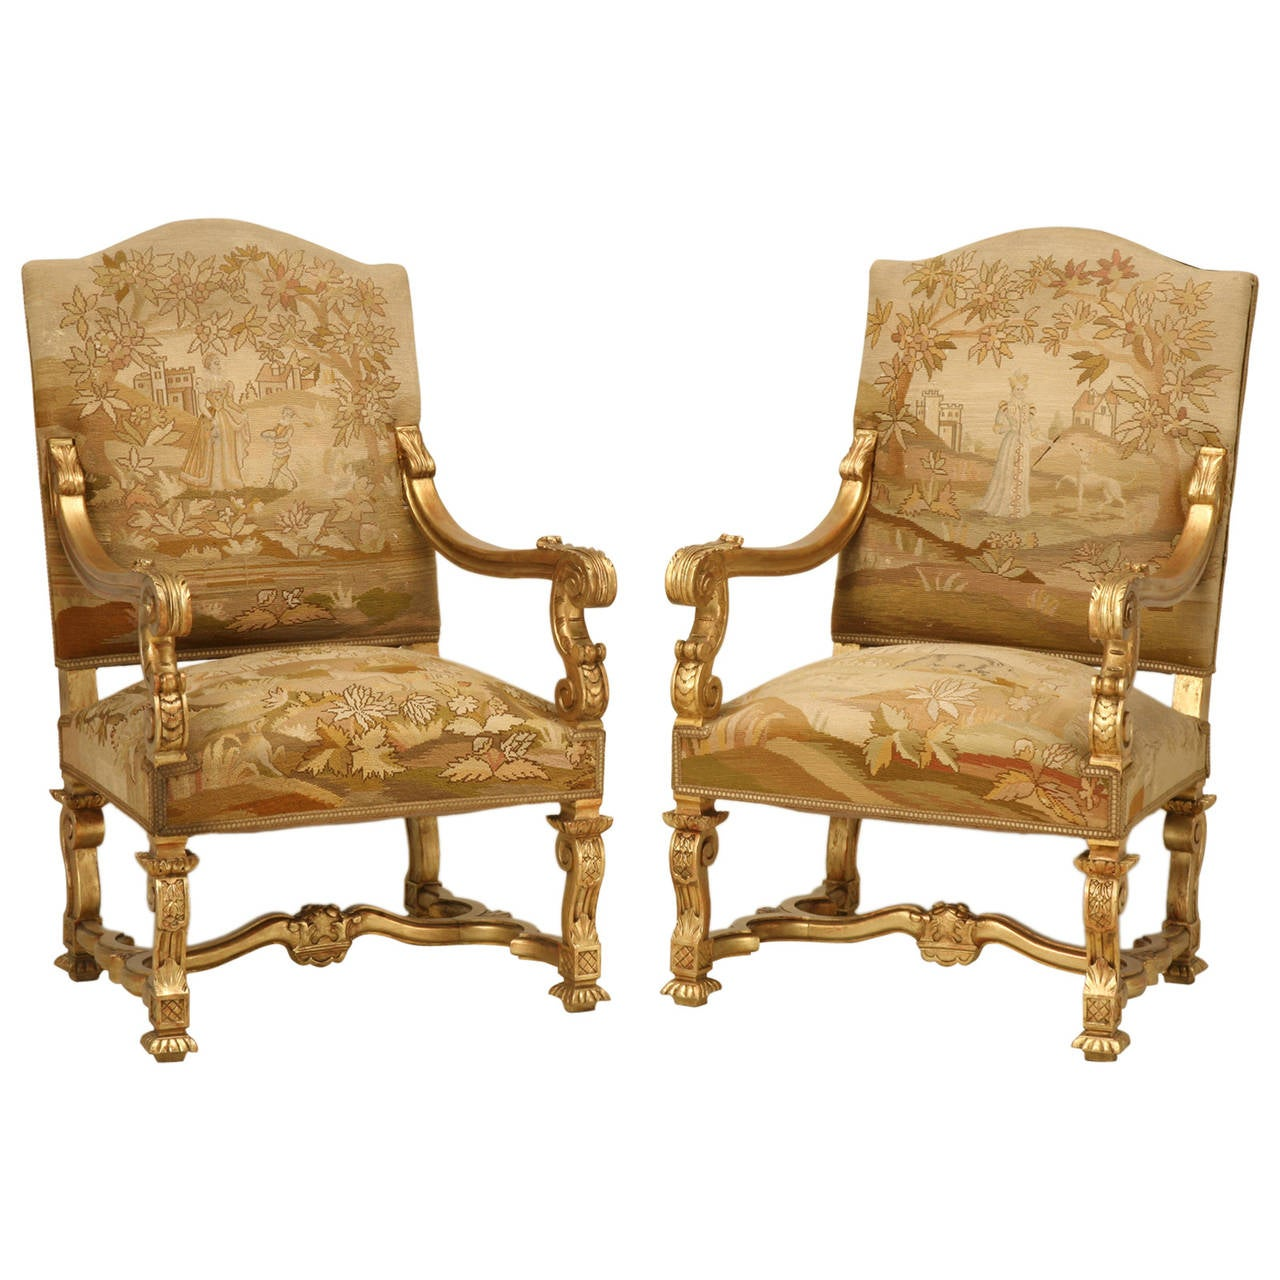 Antique French Gilded Throne Chairs, circa 1900 For Sale - Antique French Gilded Throne Chairs, Circa 1900 For Sale At 1stdibs